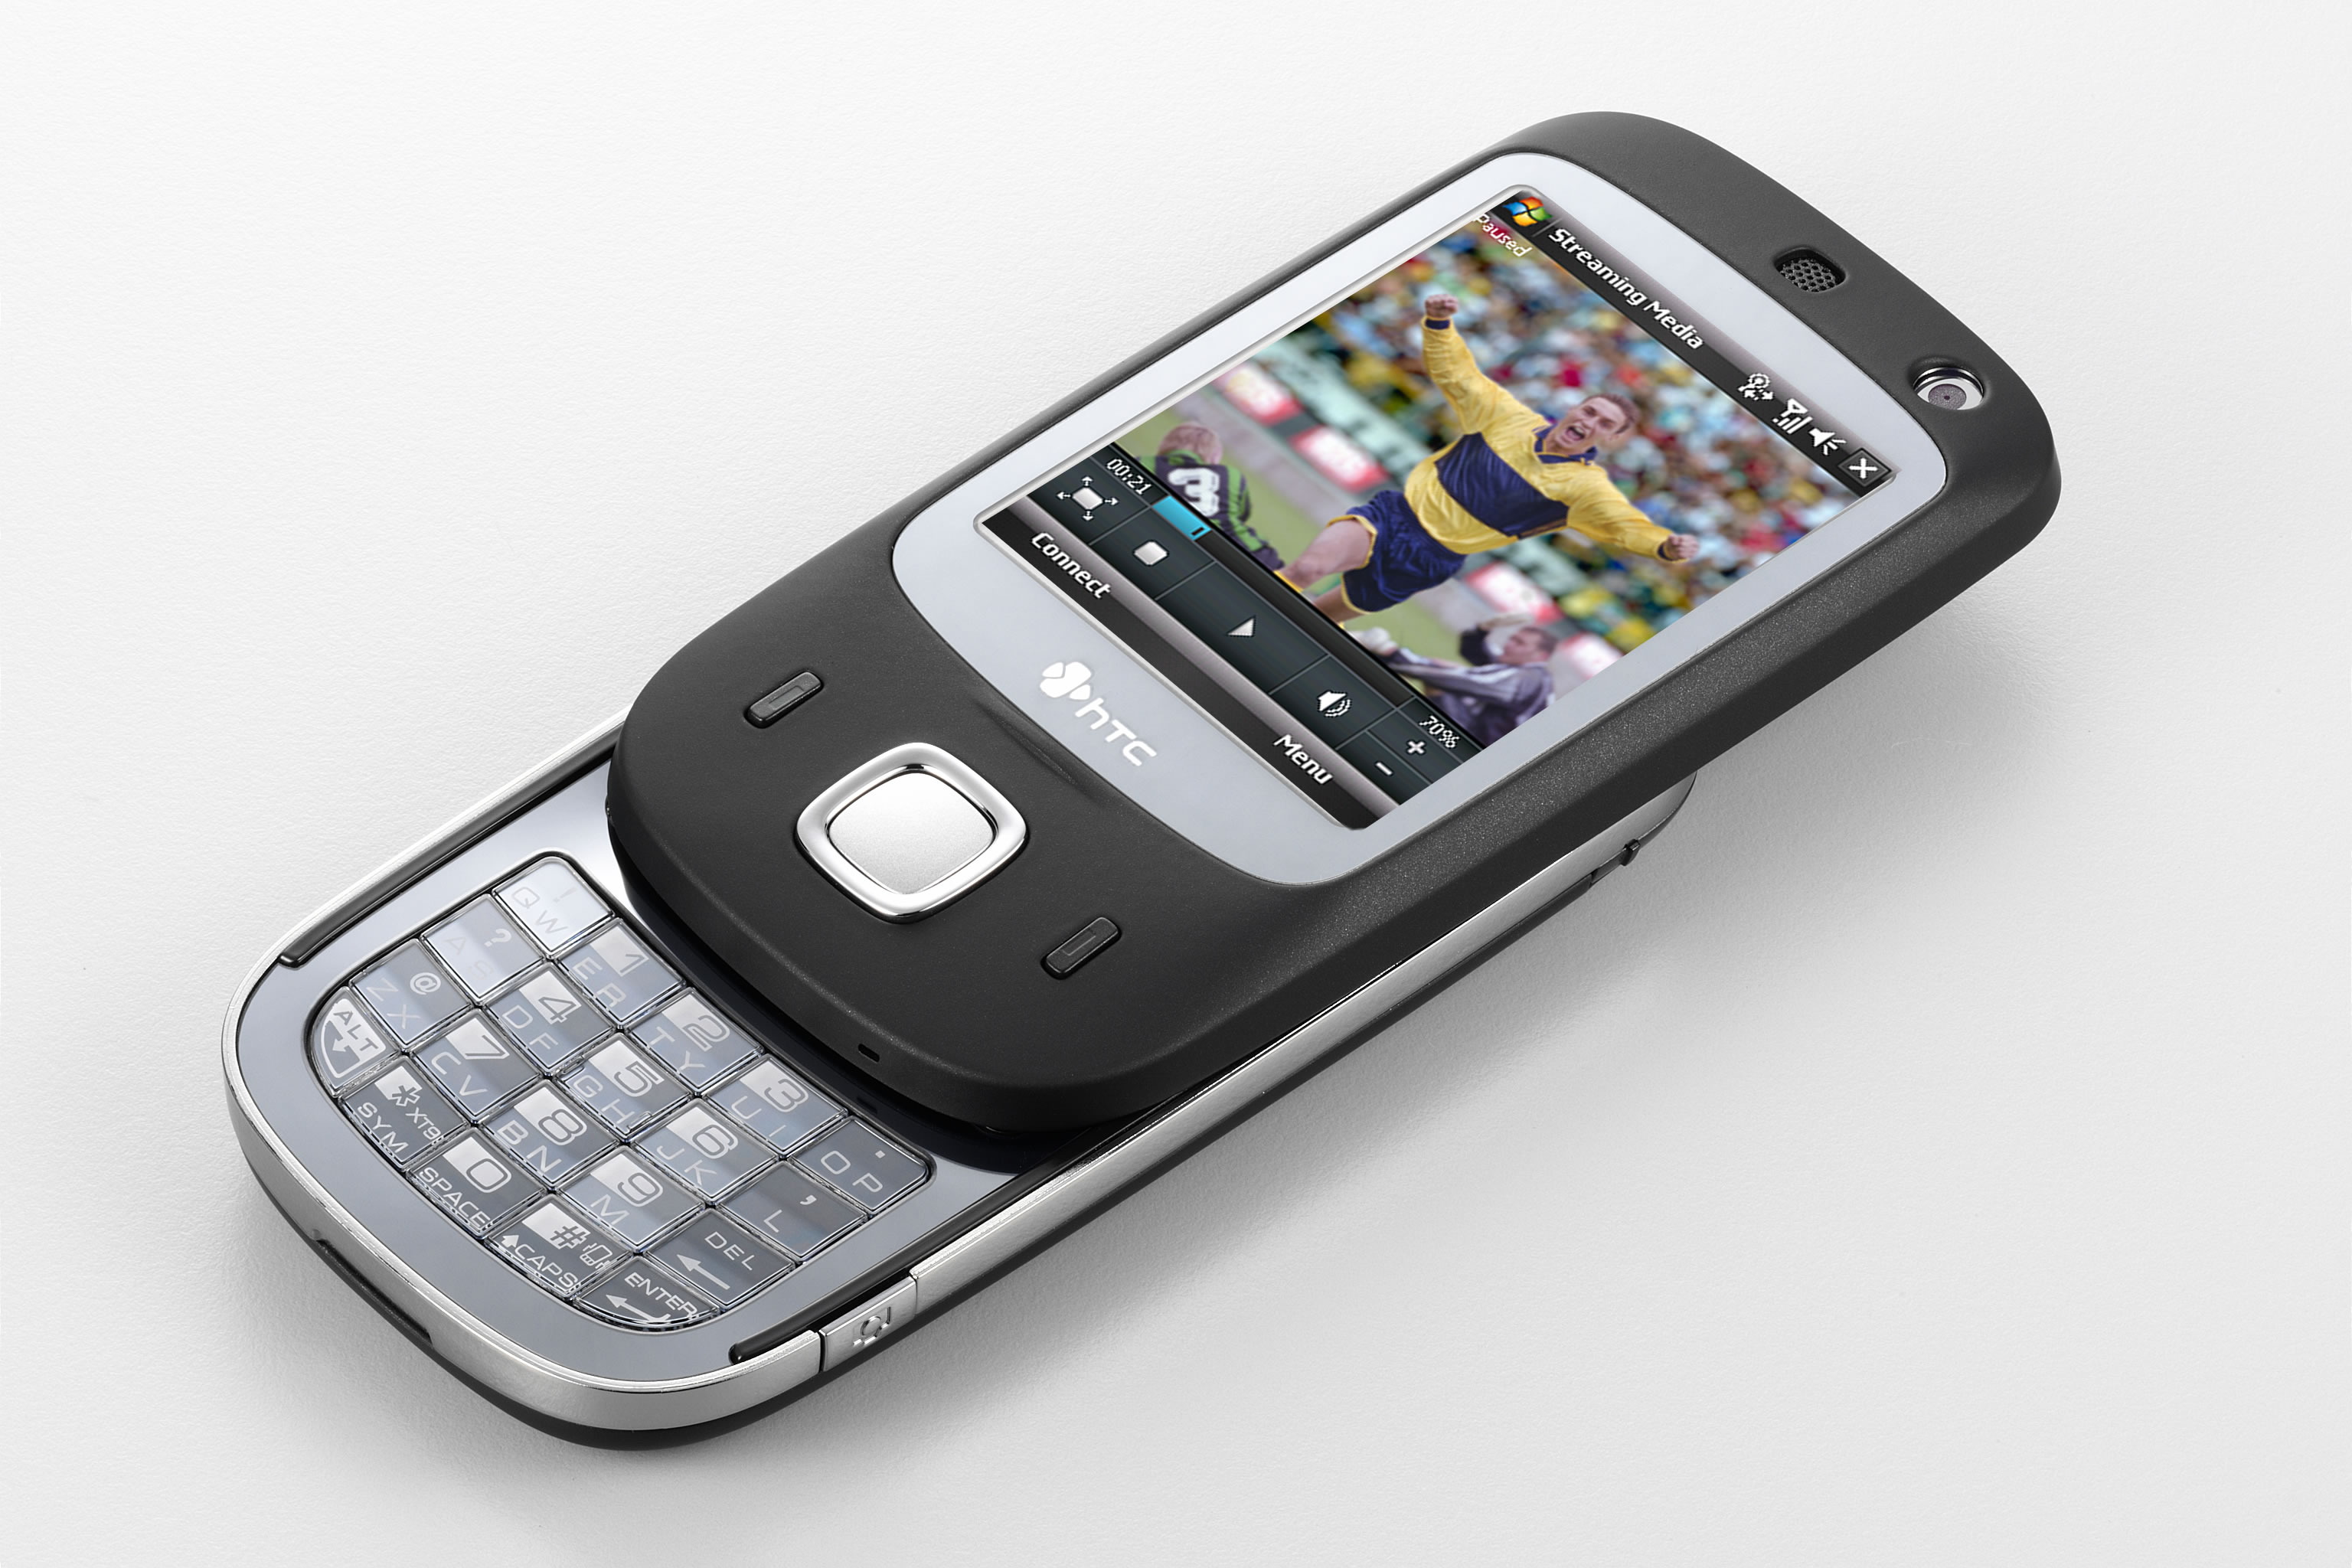 HTC Touch Dual Image